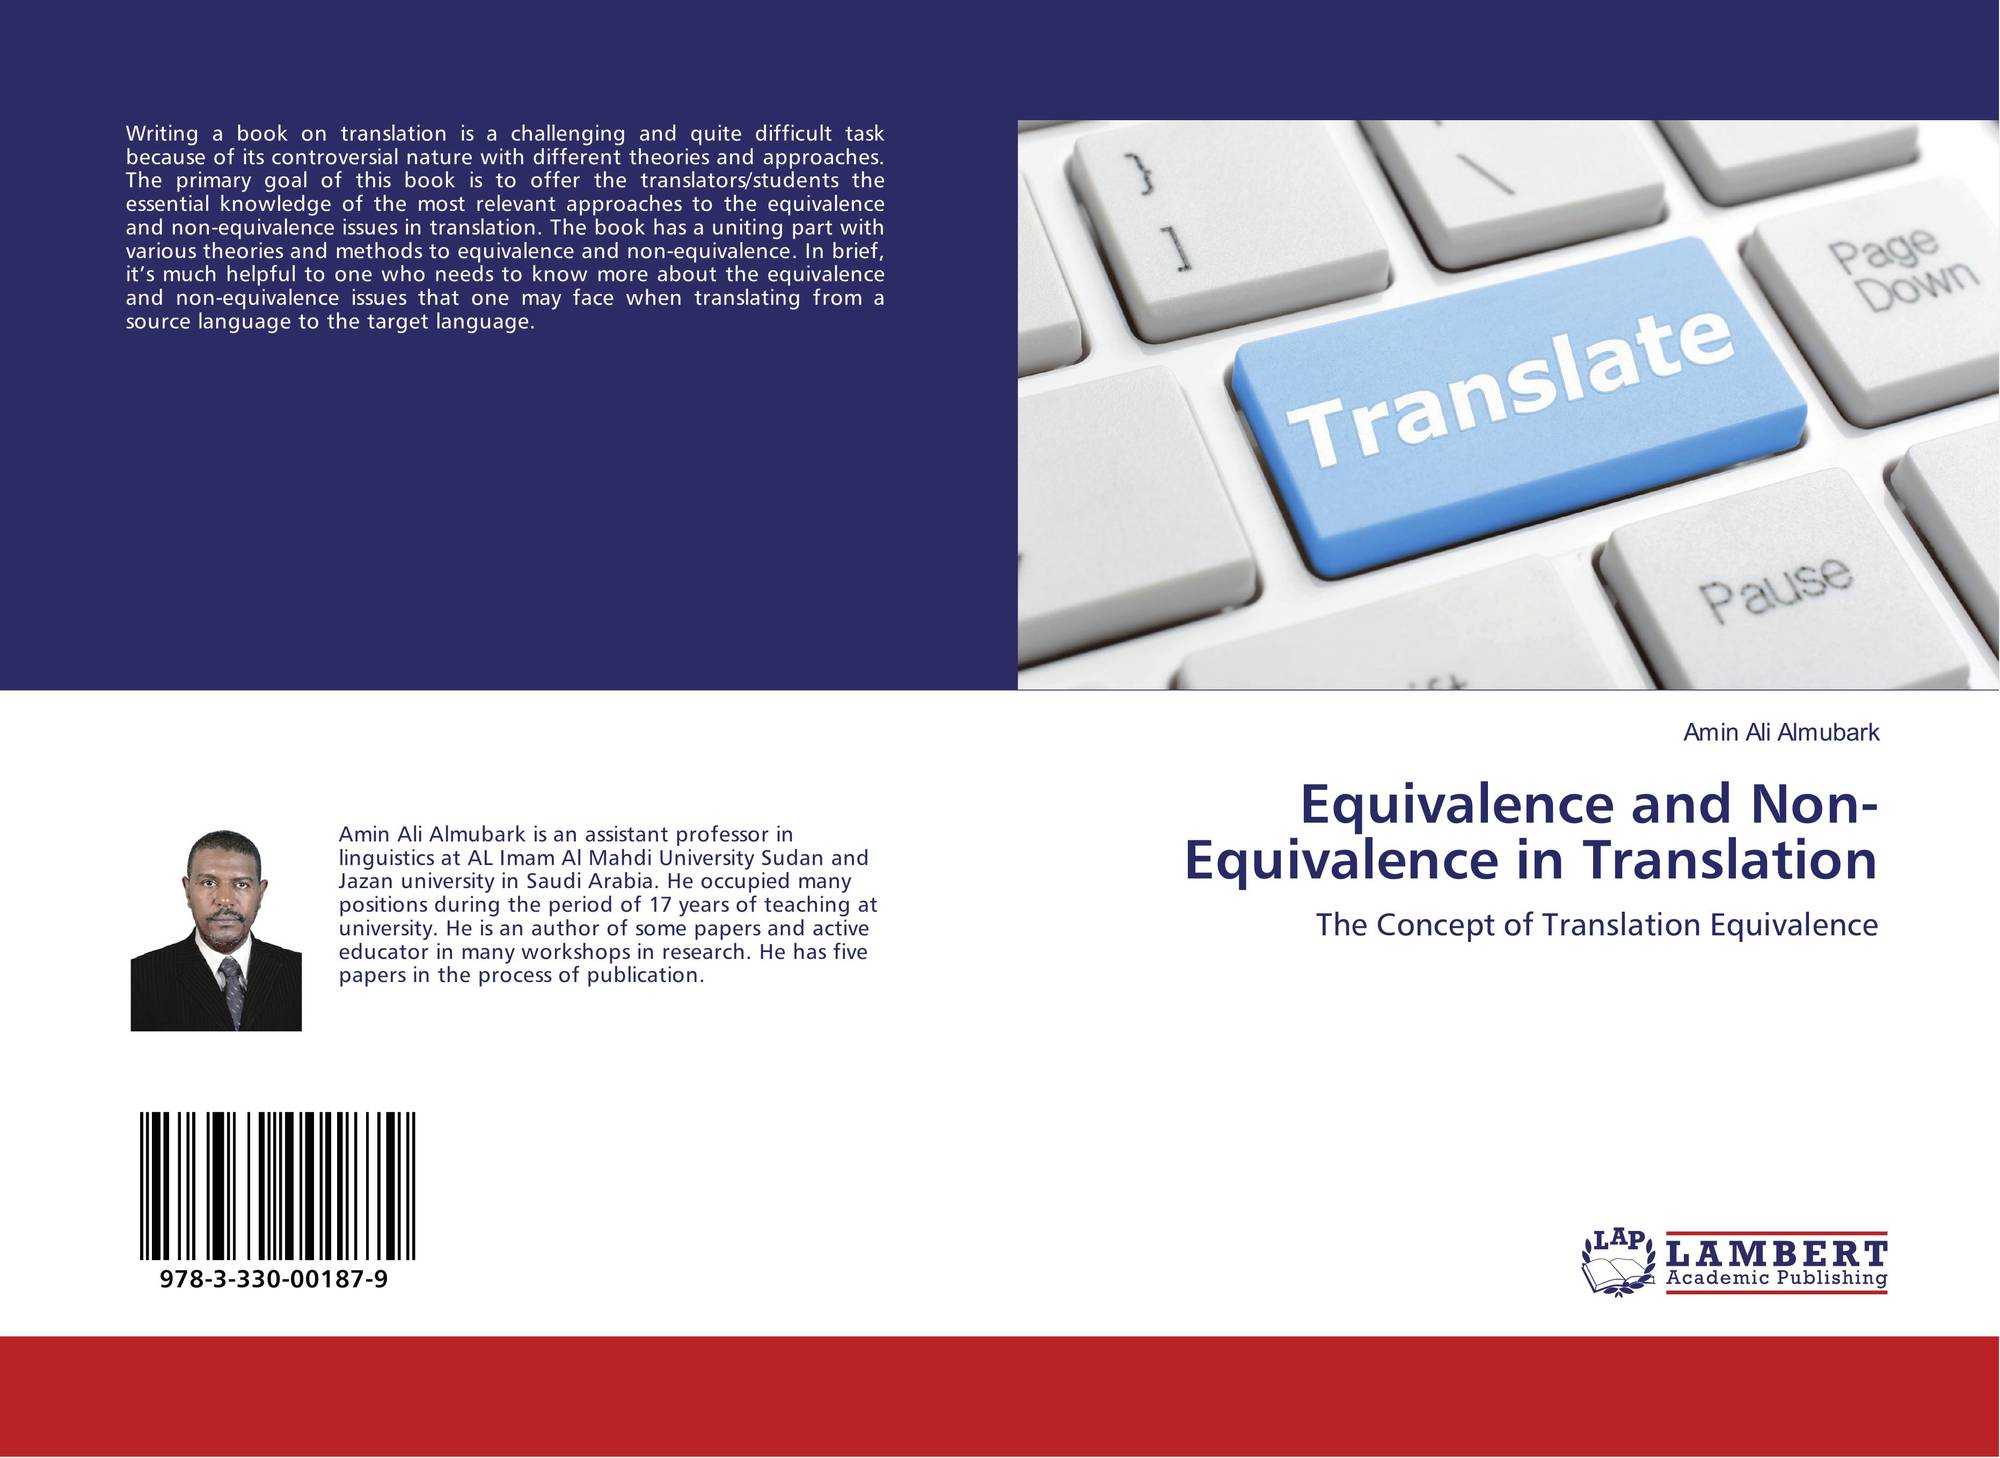 the concept of equivalence in translation What is equivalence jakobson nida catford baker a)having equality of value, force or importance routeledge 1992 first edition mona baker in other words baker offers a more detailed list of conditions upon which the concept of equivalence can be defined different levels of the translation.